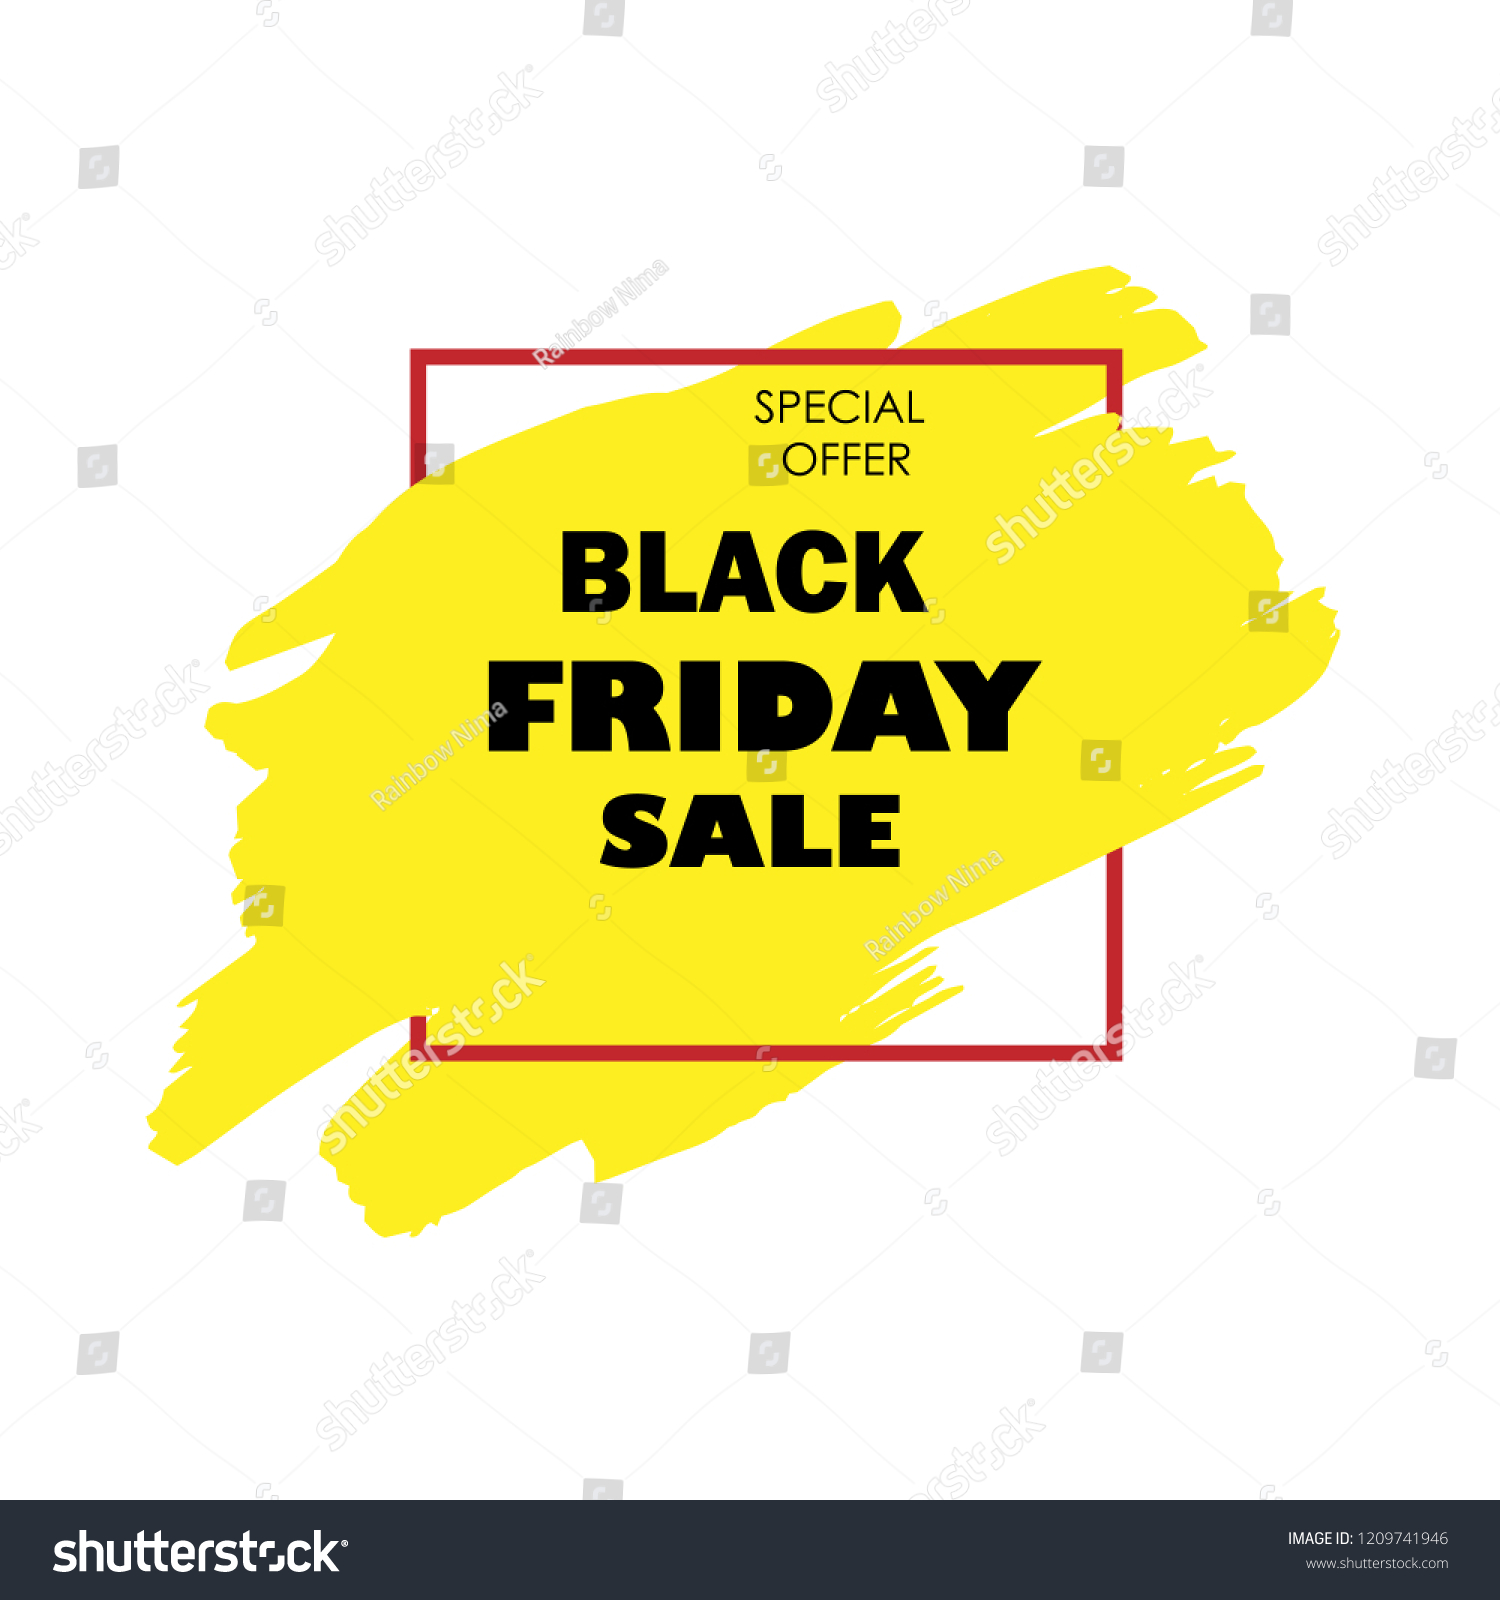 Black Friday Sale Poster Black Text Stock Vector (Royalty